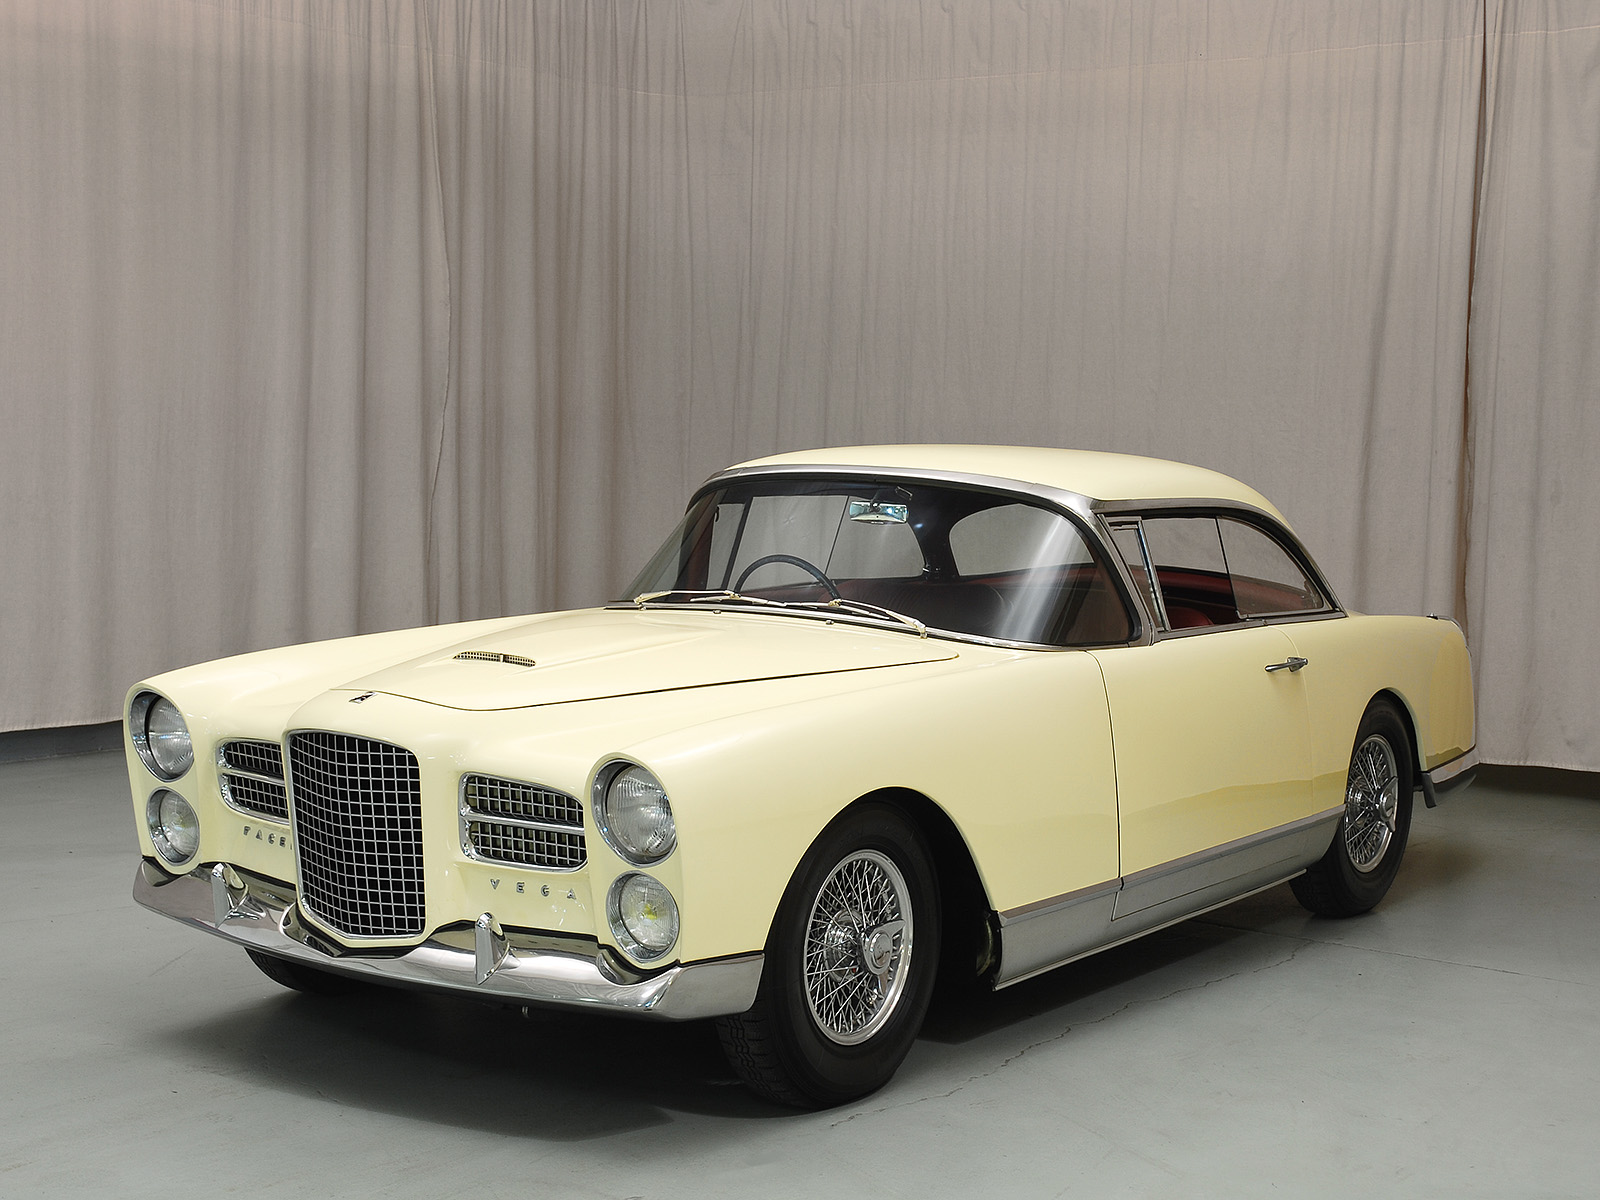 Cars For Sale | Facel Vega Car Club